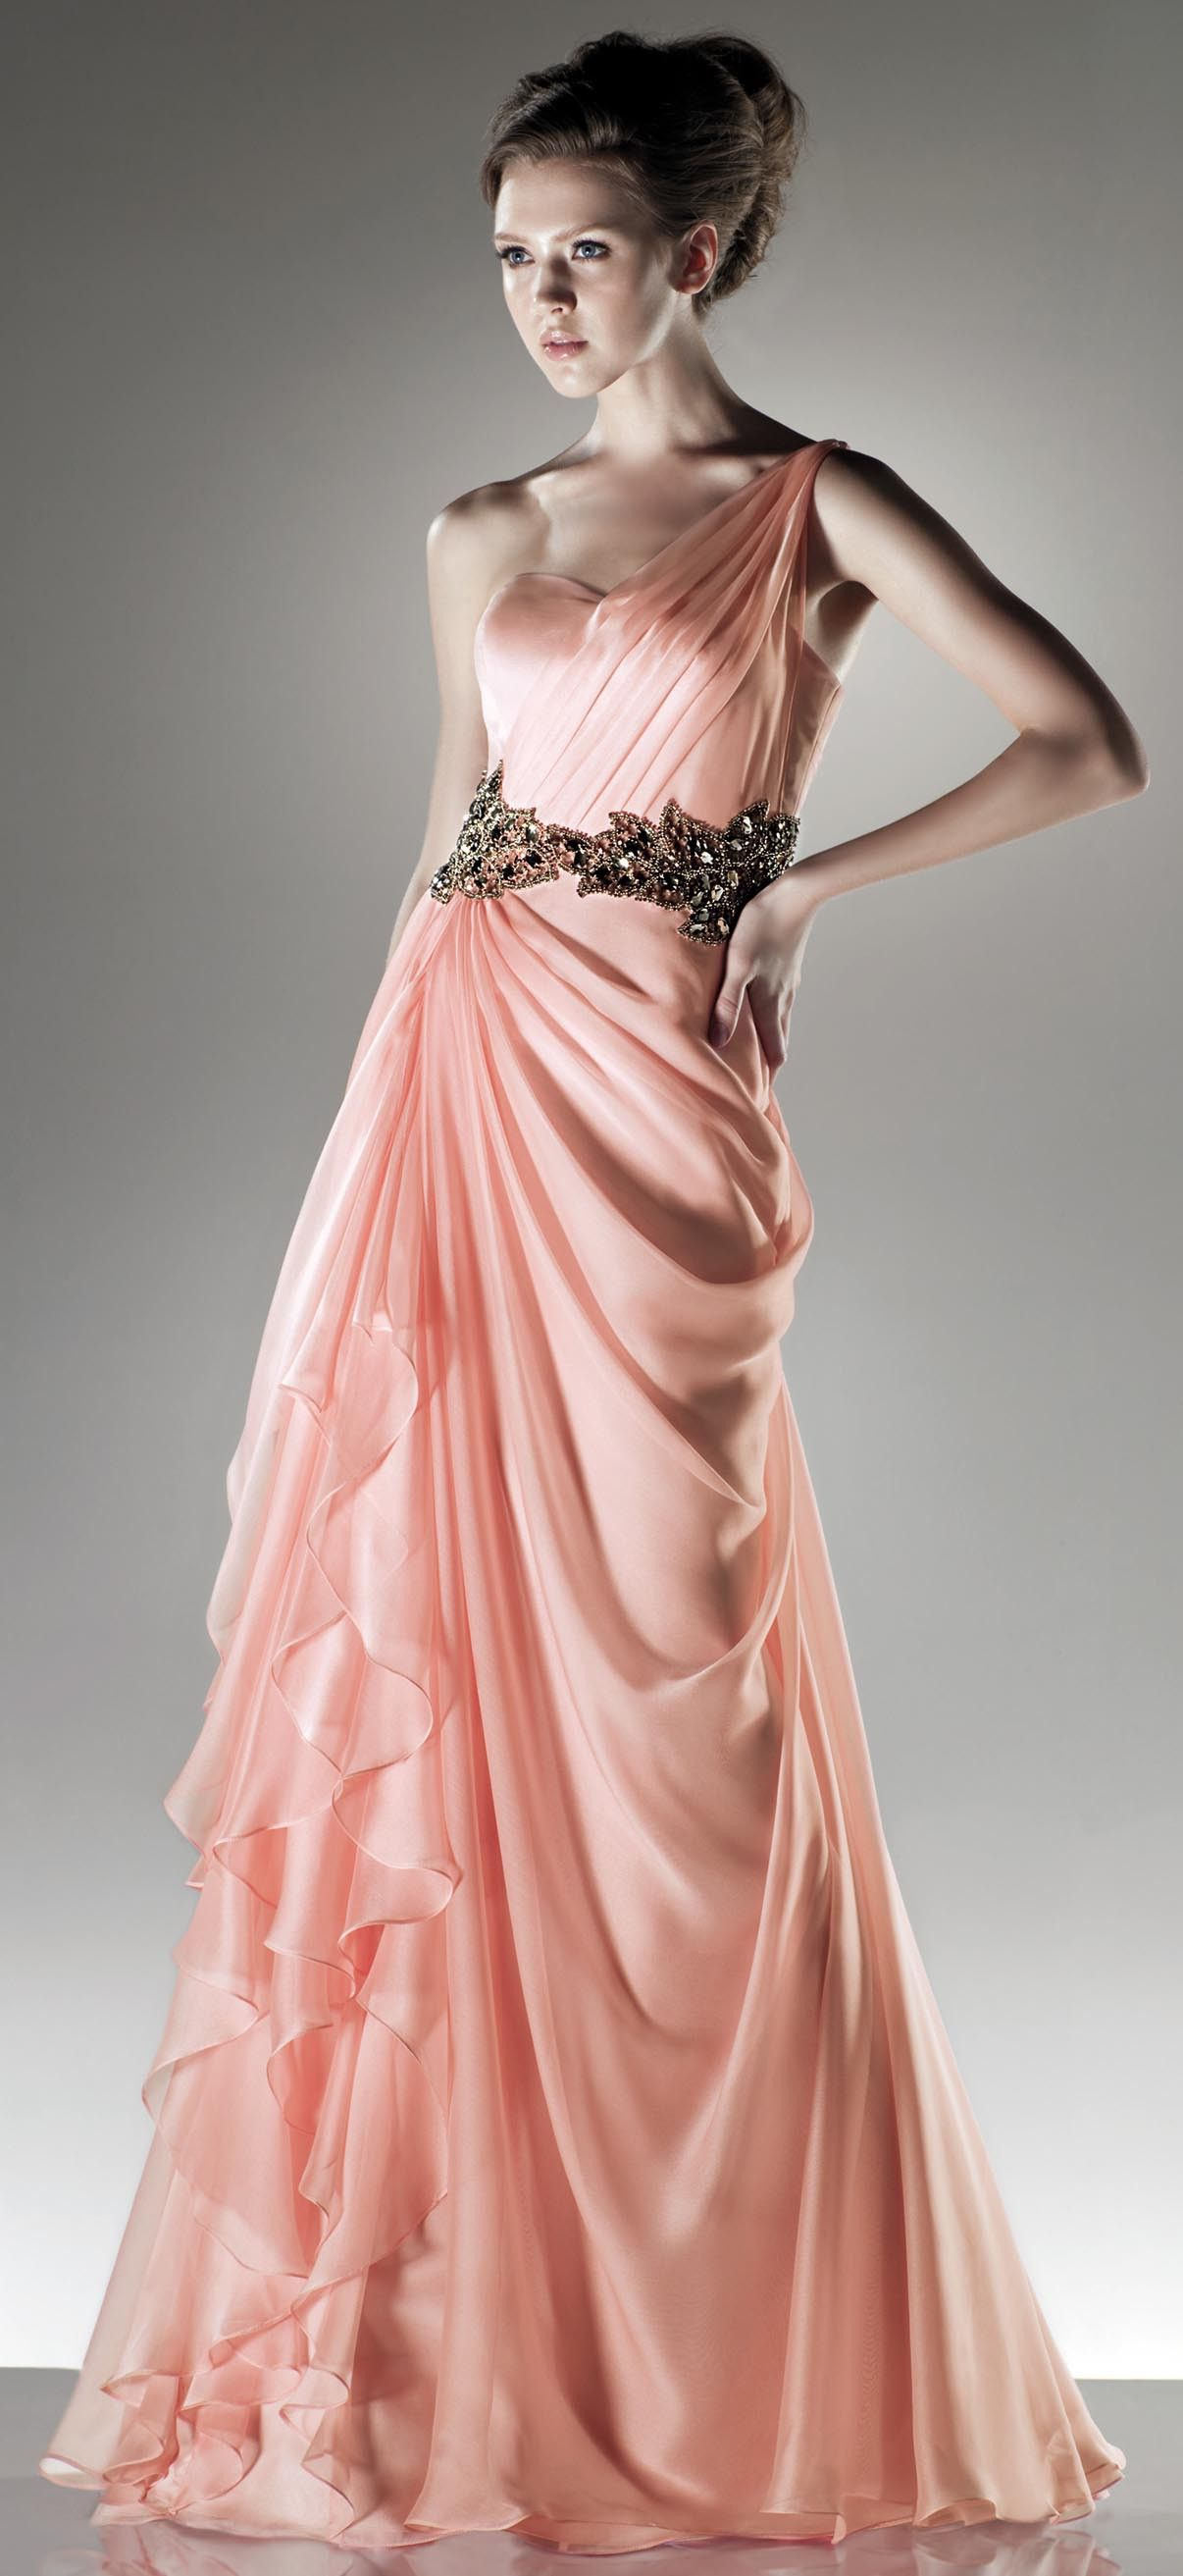 Elegant one shoulder chiffon gown $269.00 | fashion | Pinterest ...